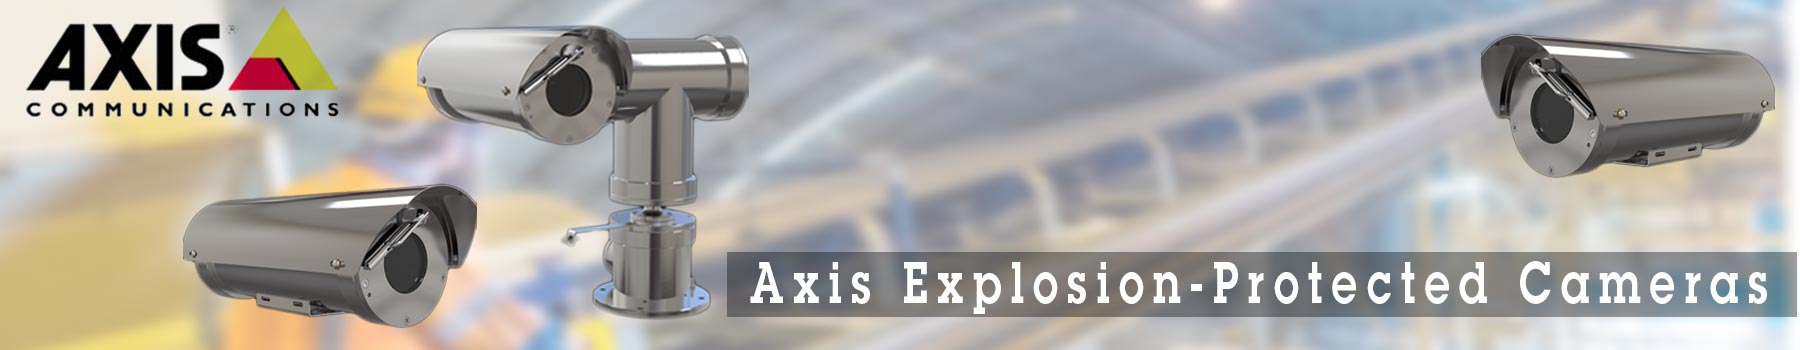 Axis Explosion protected cameras